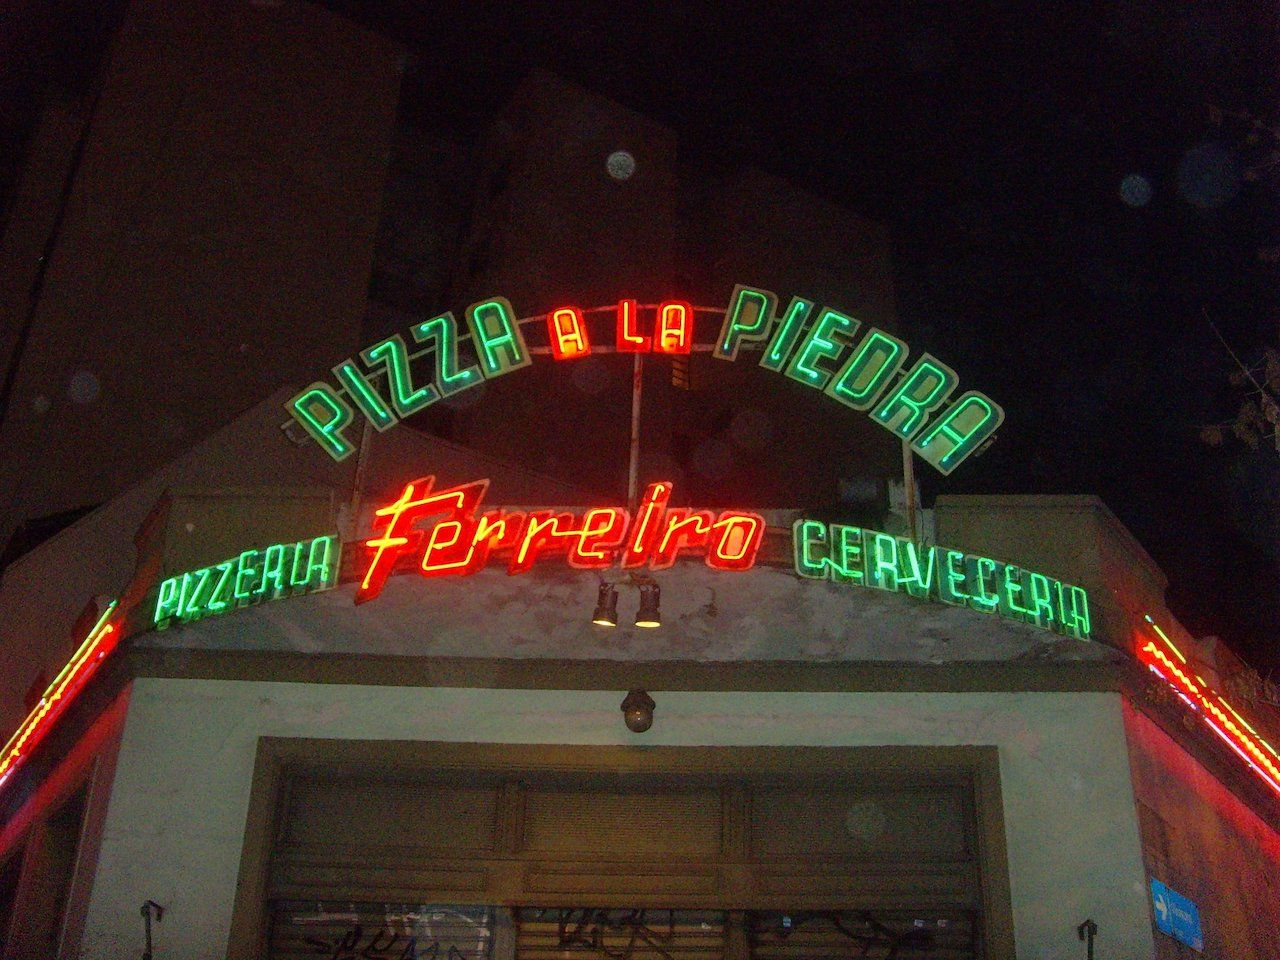 Outside of Pizzeria Ferreiro in Buenos Aires, Argentina